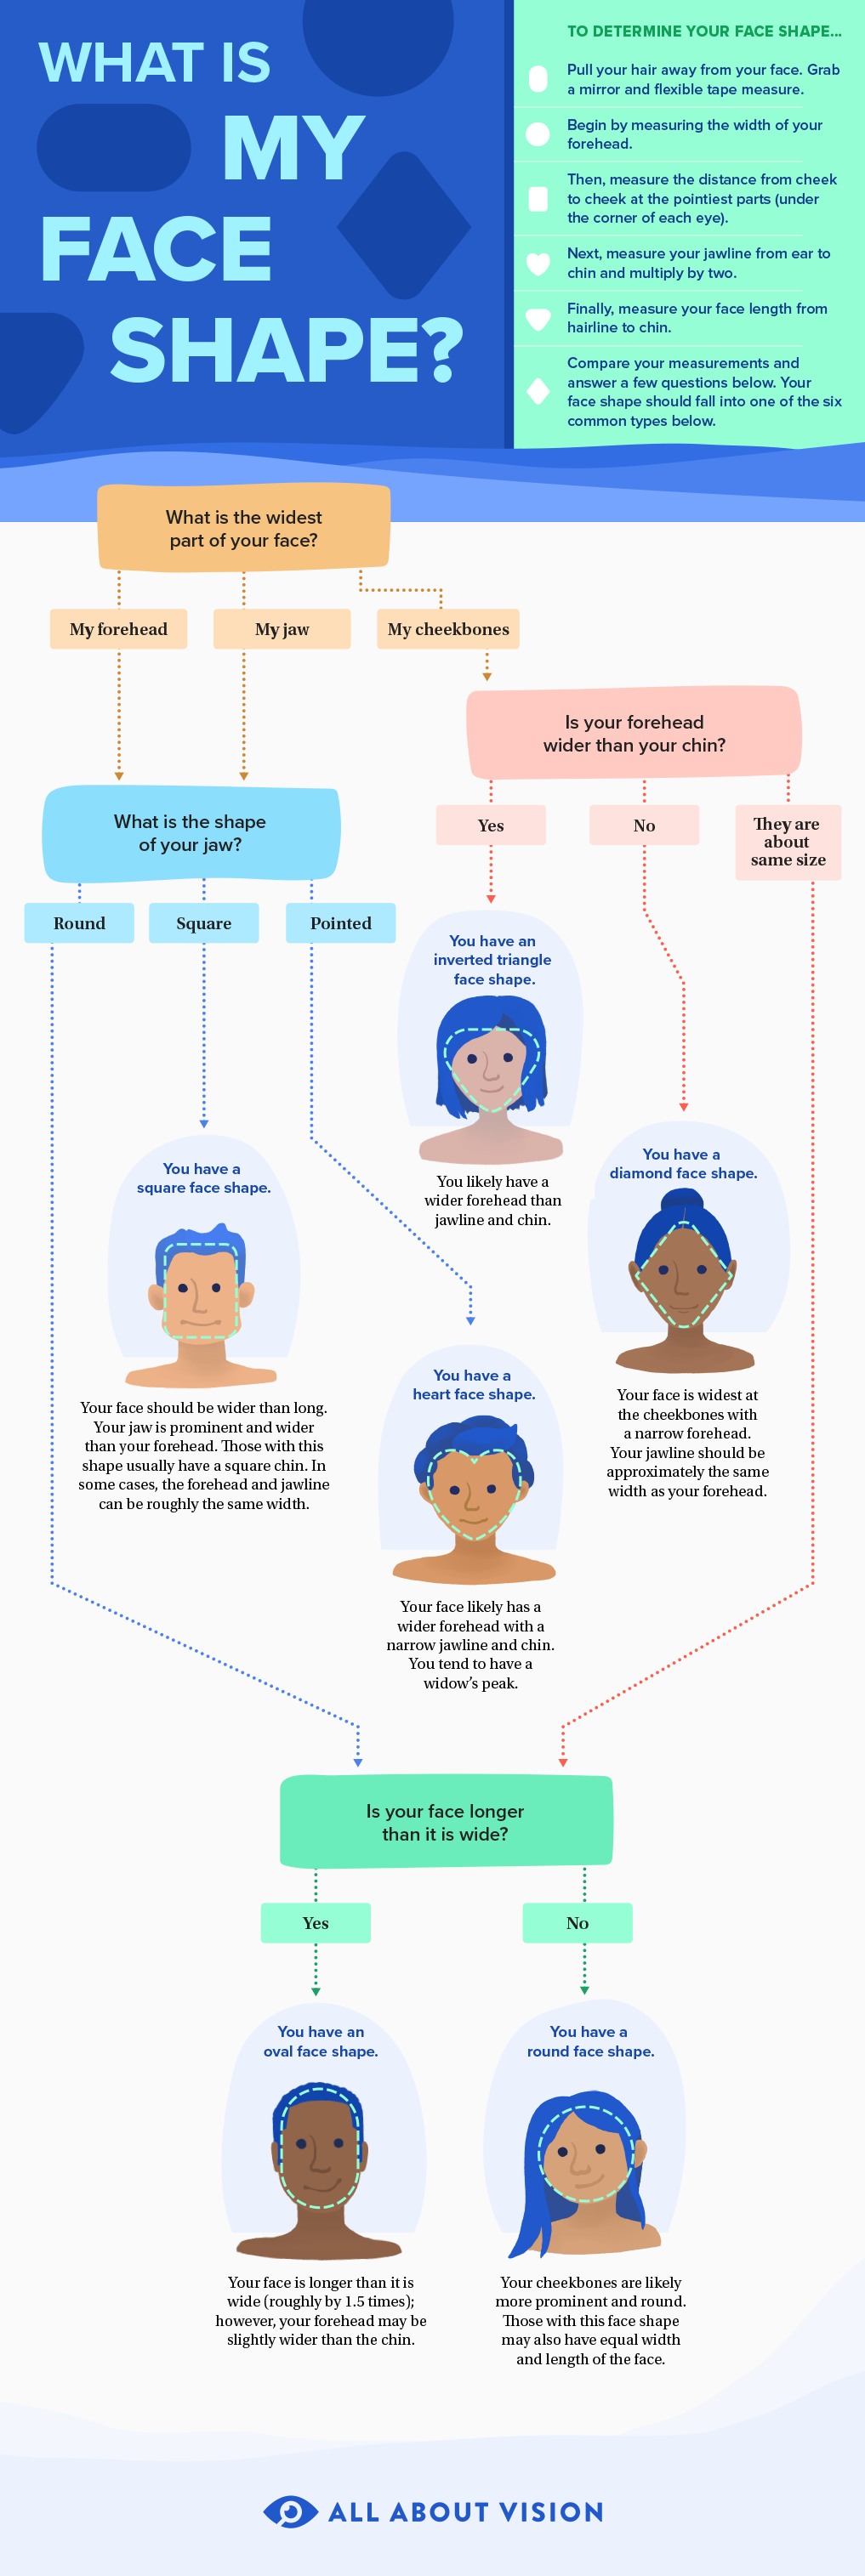 https://cdn.allaboutvision.com/images/infographic-what-is-my-face-shape.png